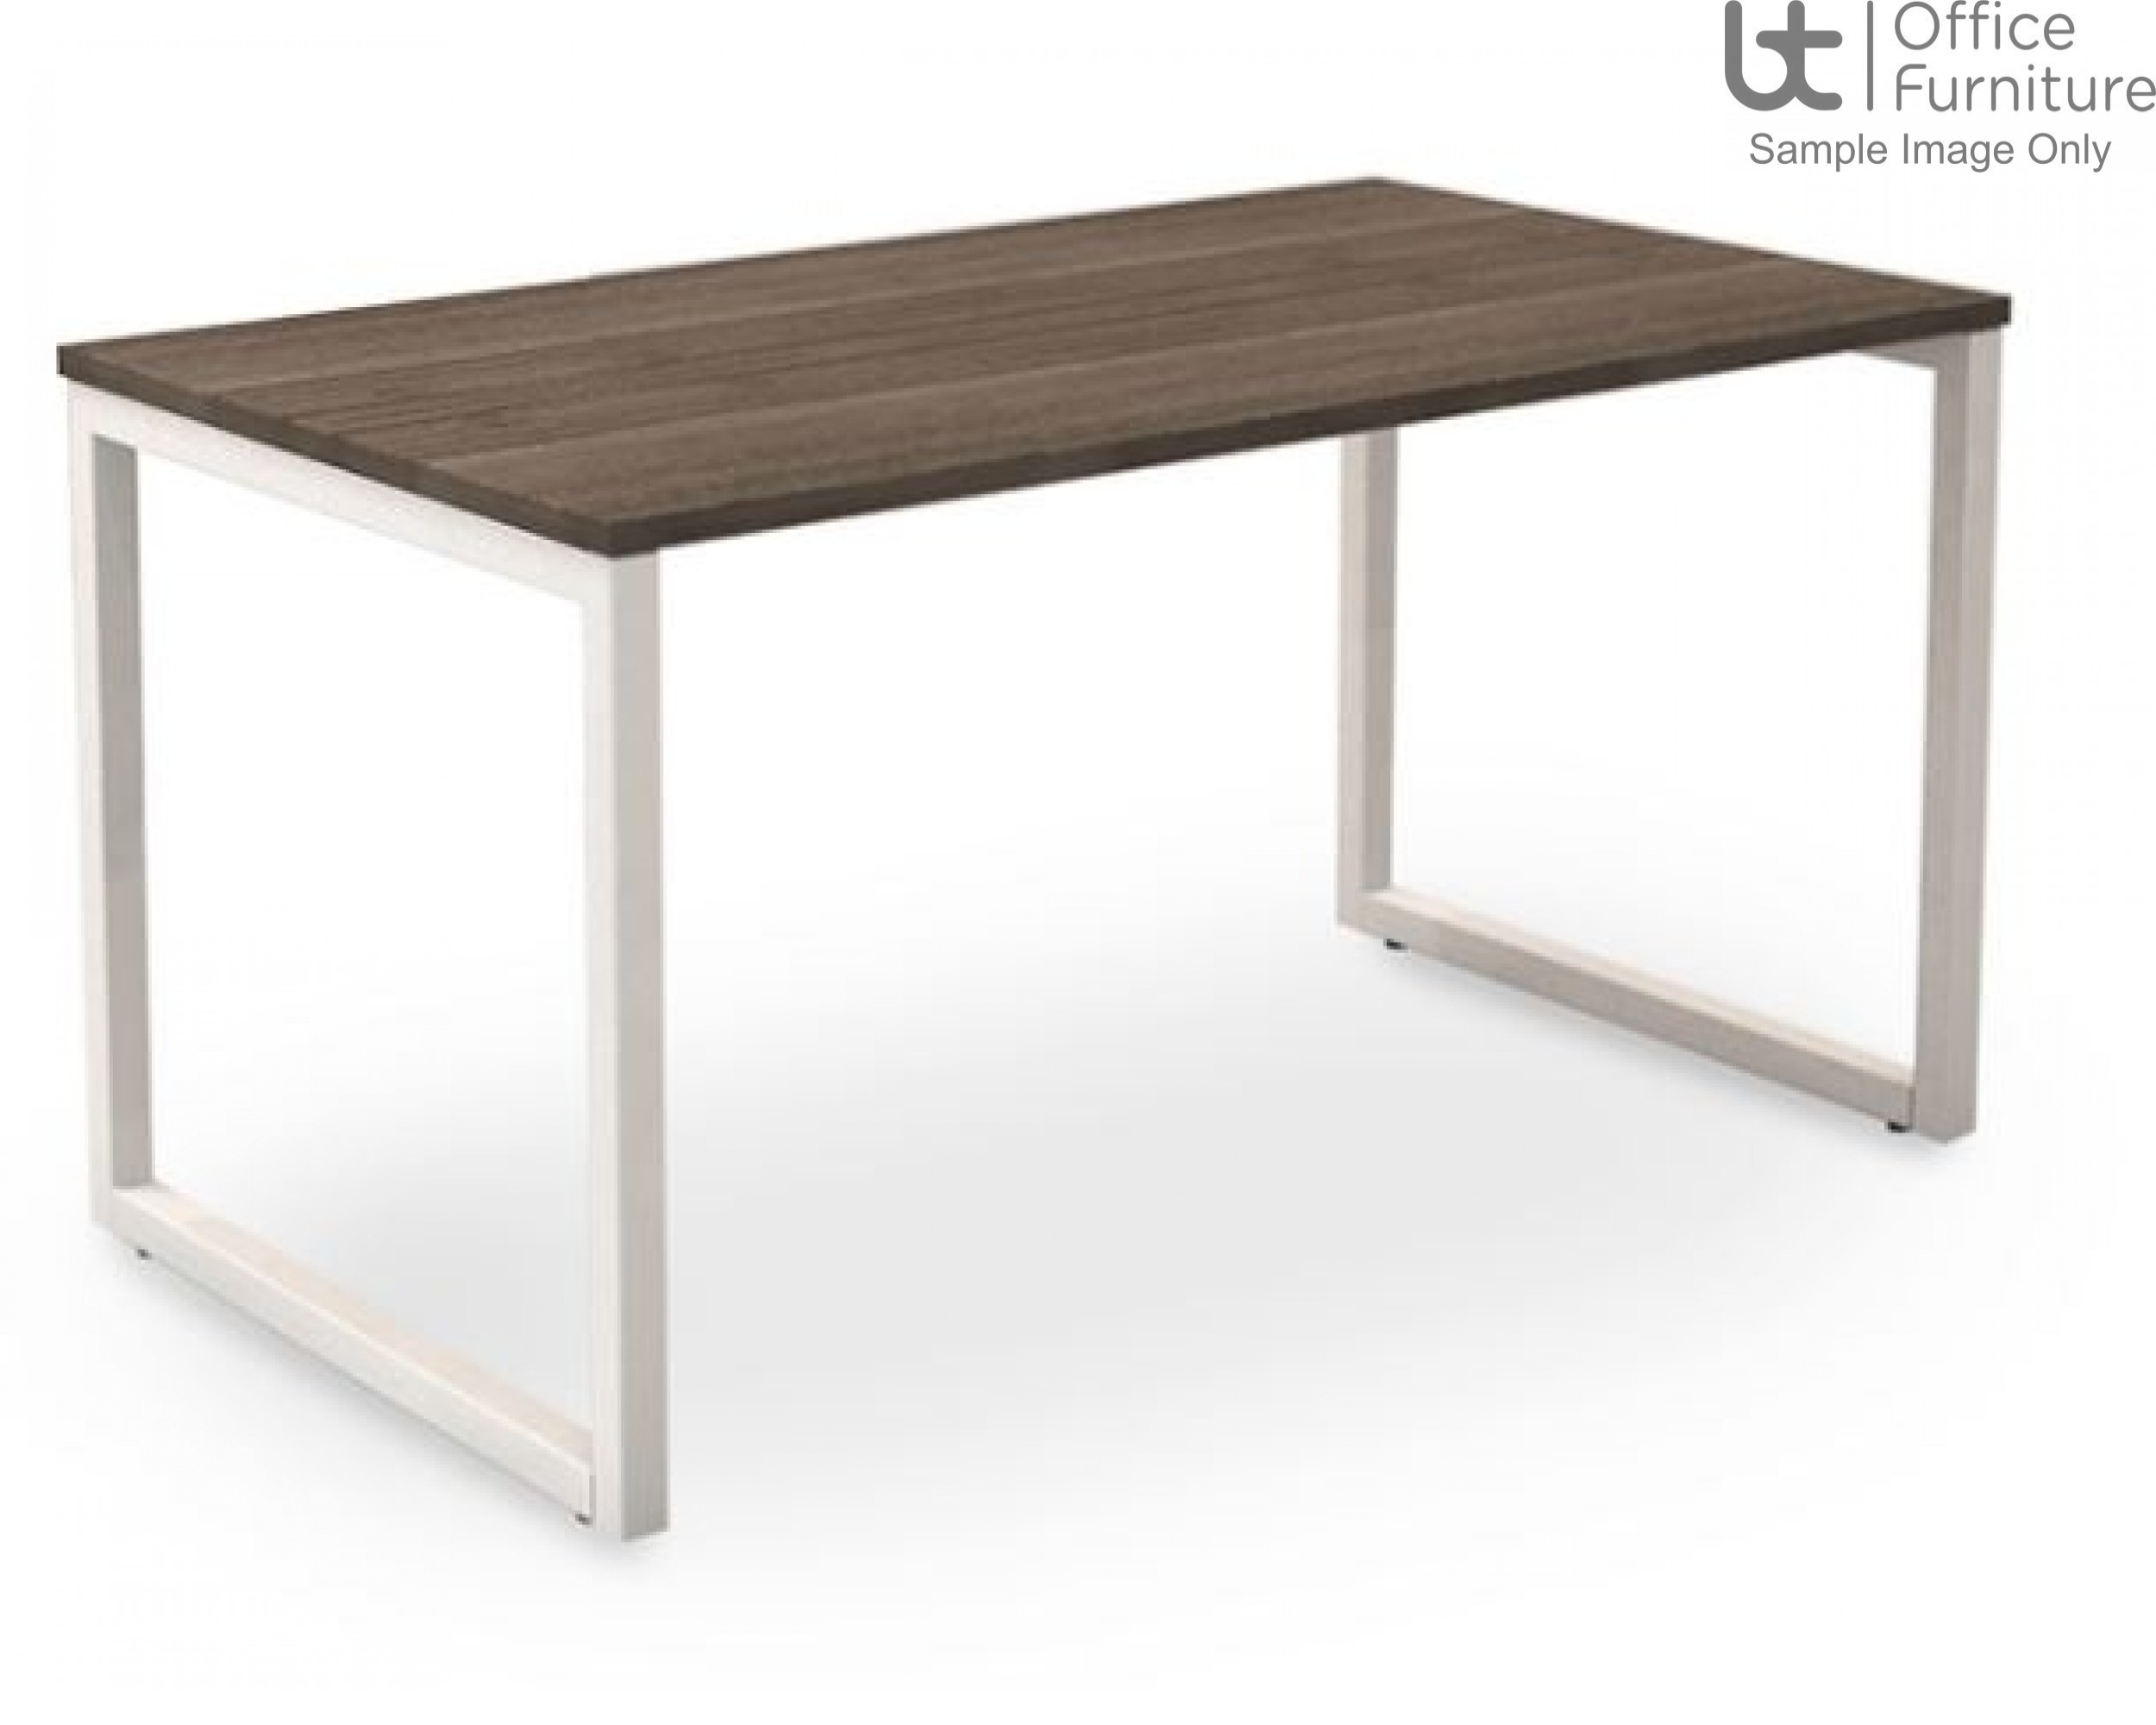 Robust Block Steel Frame Bench Dining Table W1600 x D800 x H740mm